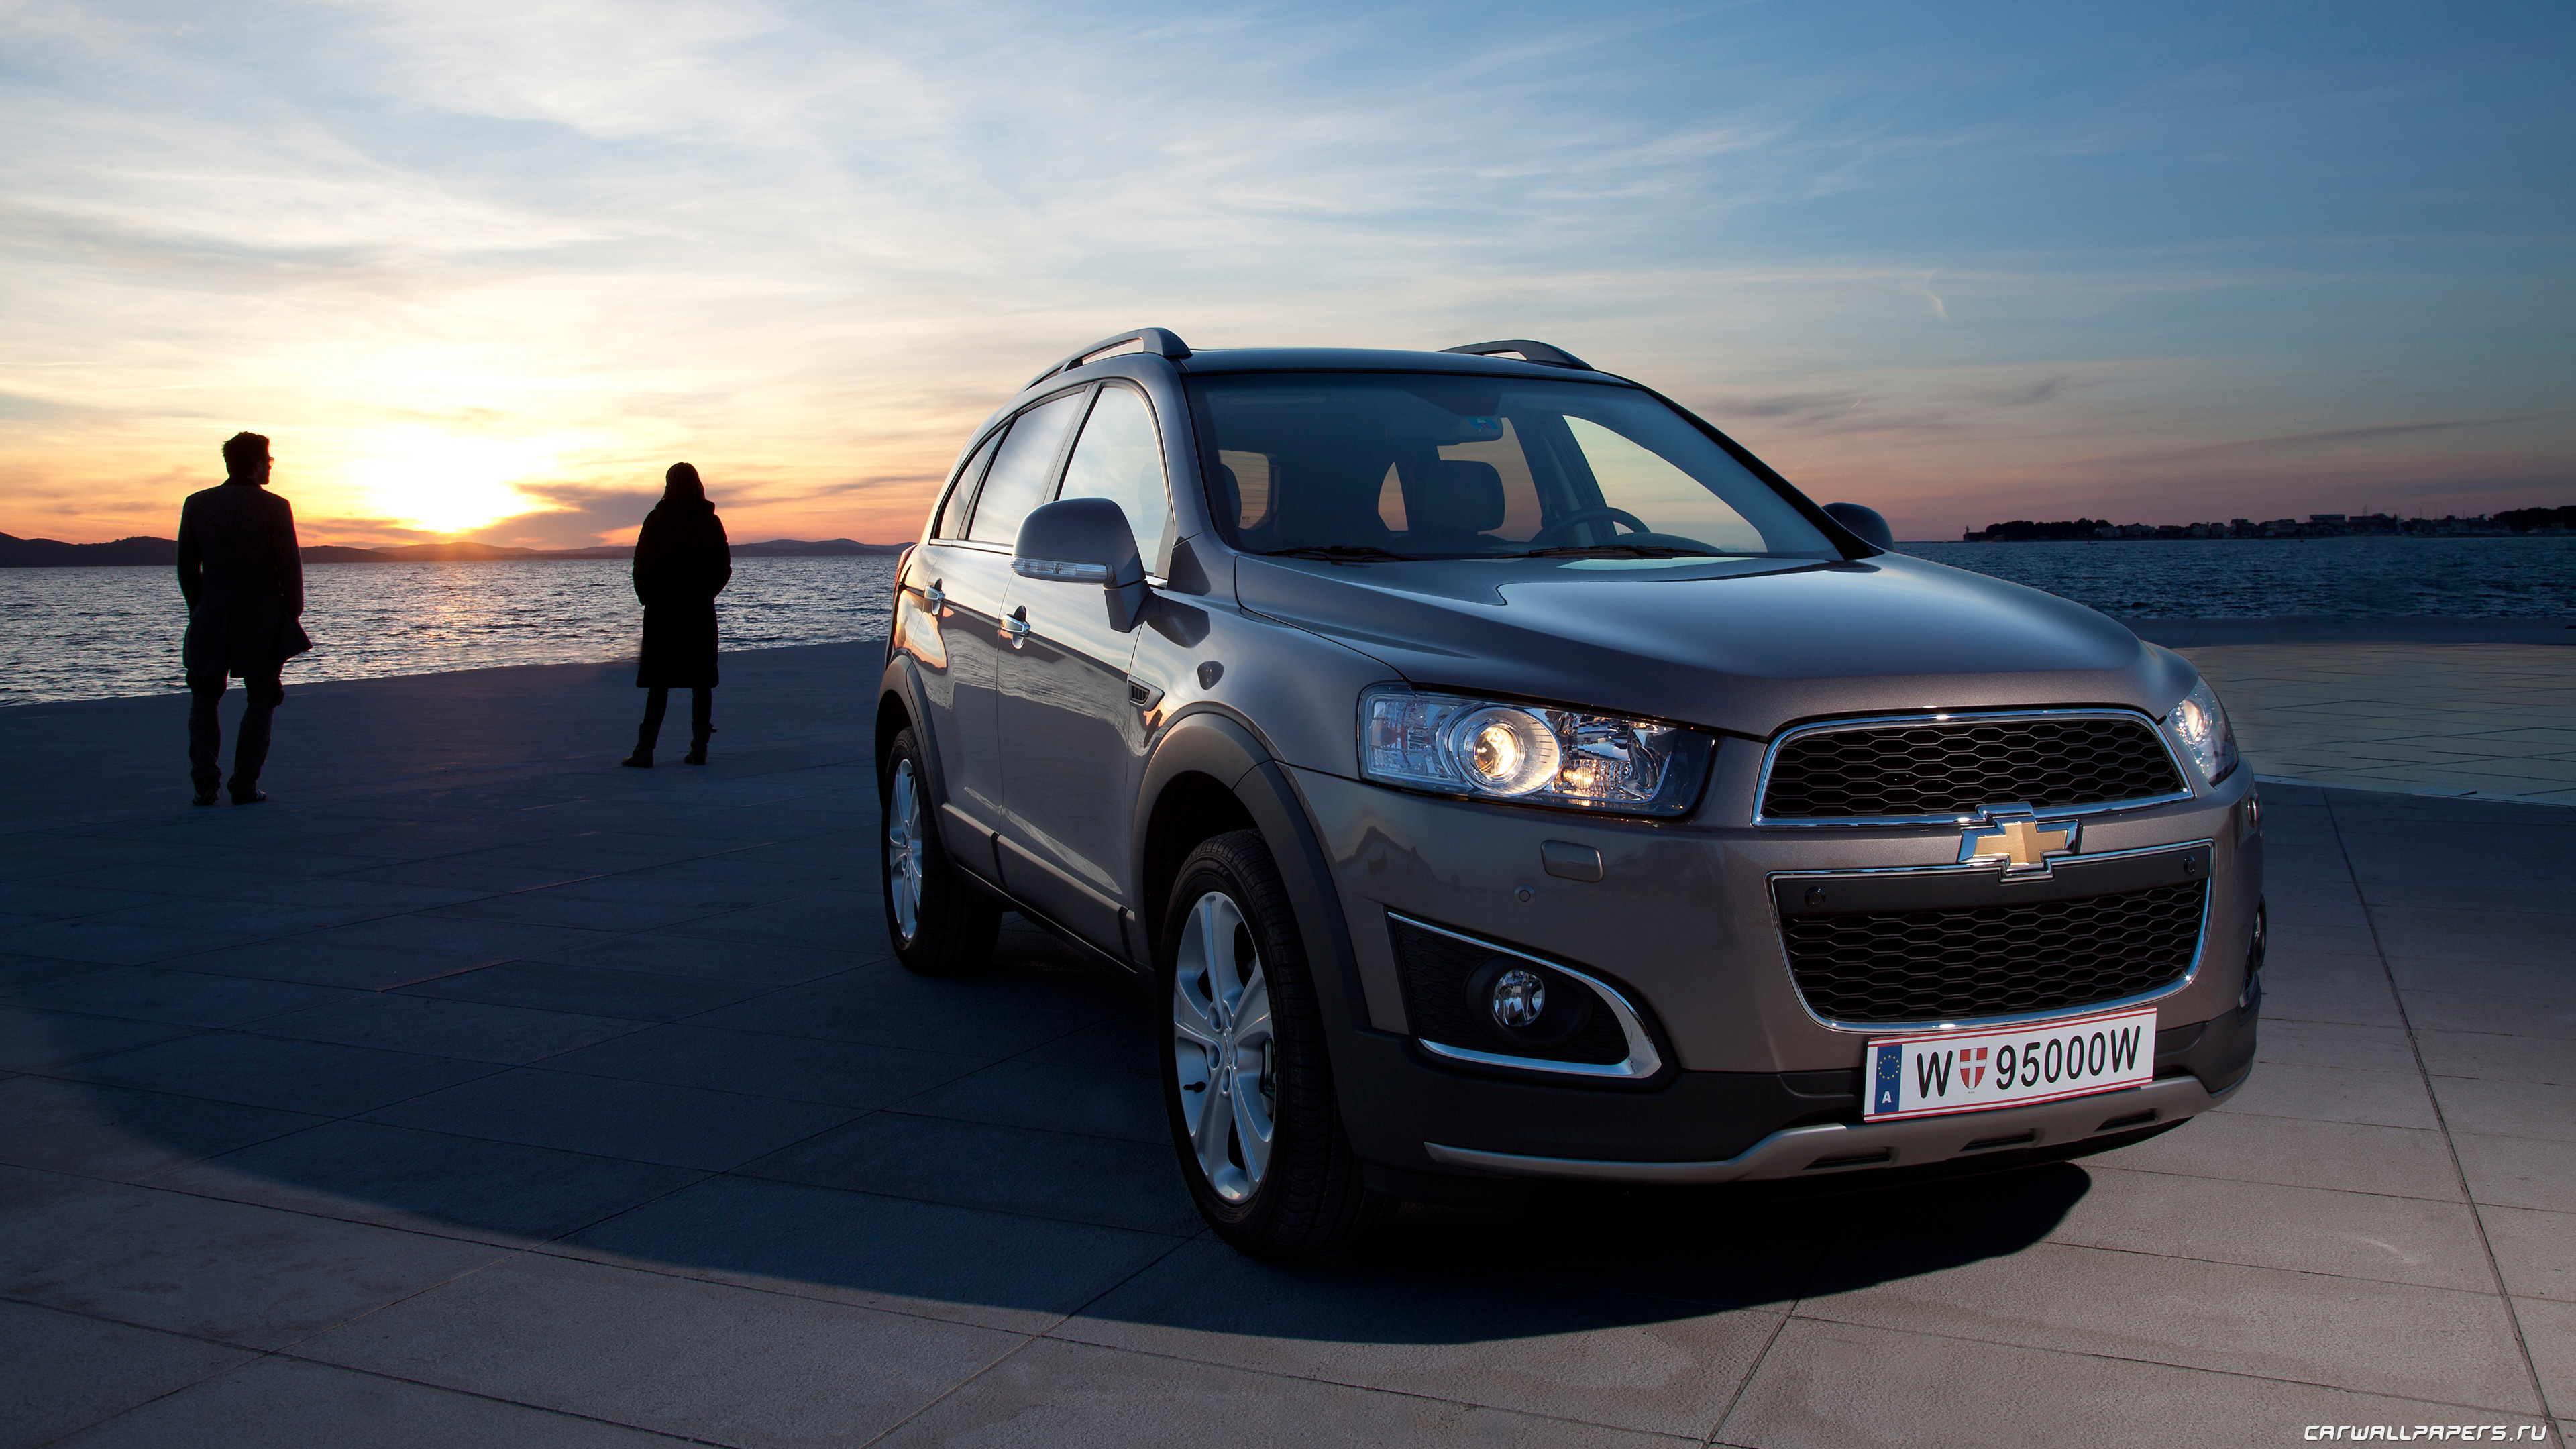 captiva The redefined turbo-diesel captiva boasts of unparalleled refinement and practicality when it comes to compact suvs.